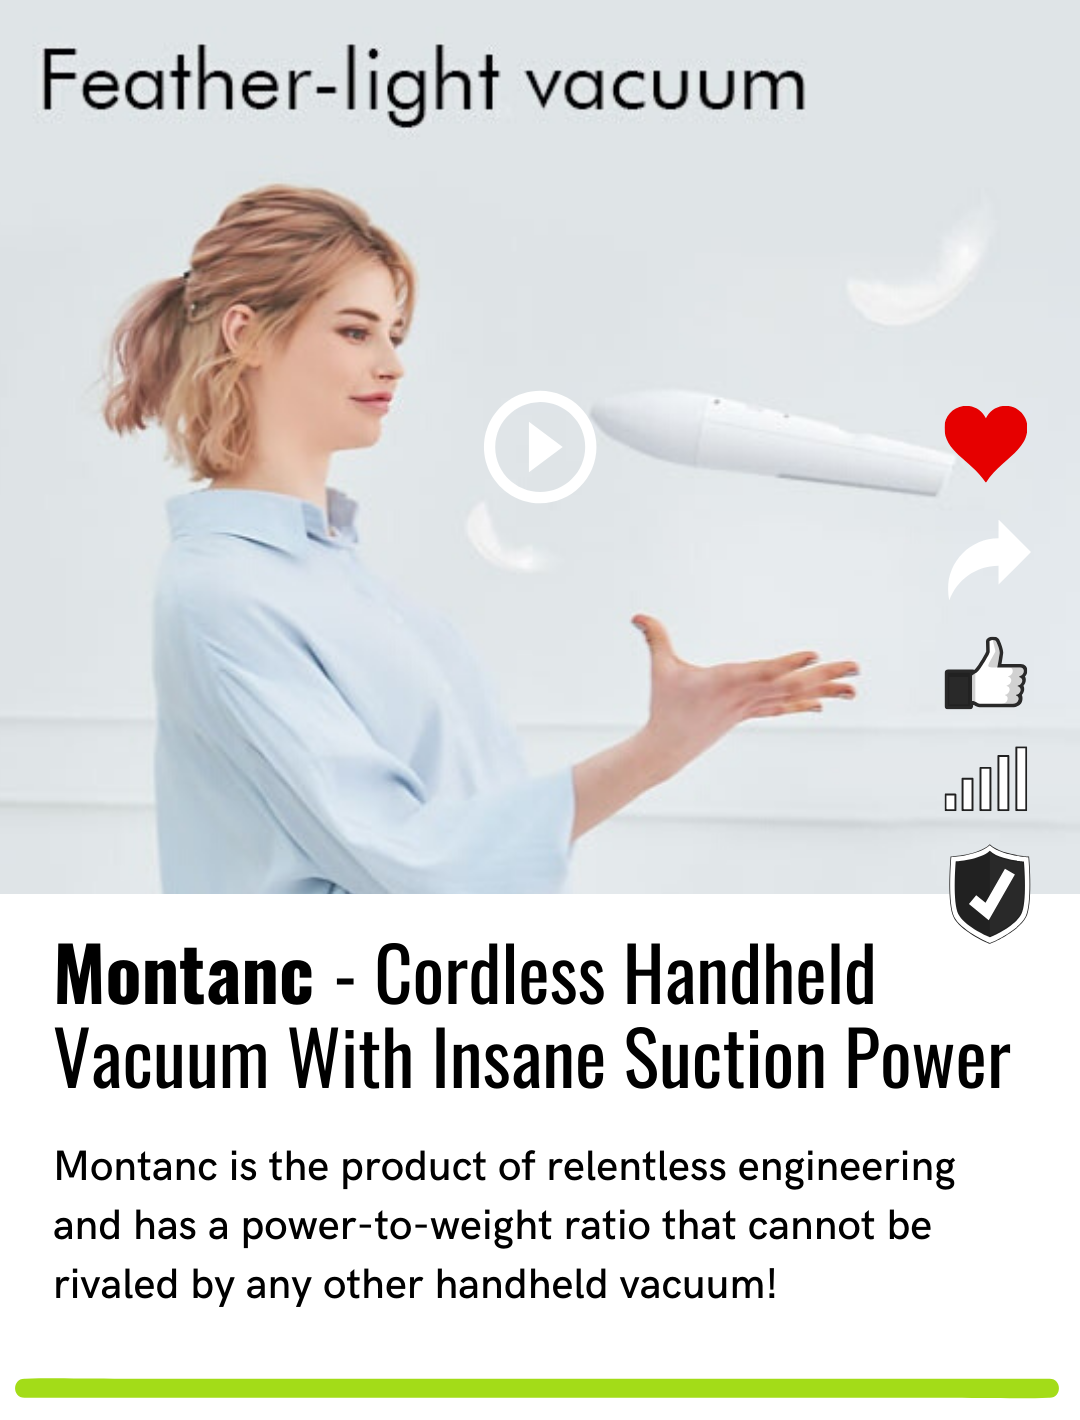 Montanc - Cordless Handheld Vacuum With Insane Suction Power